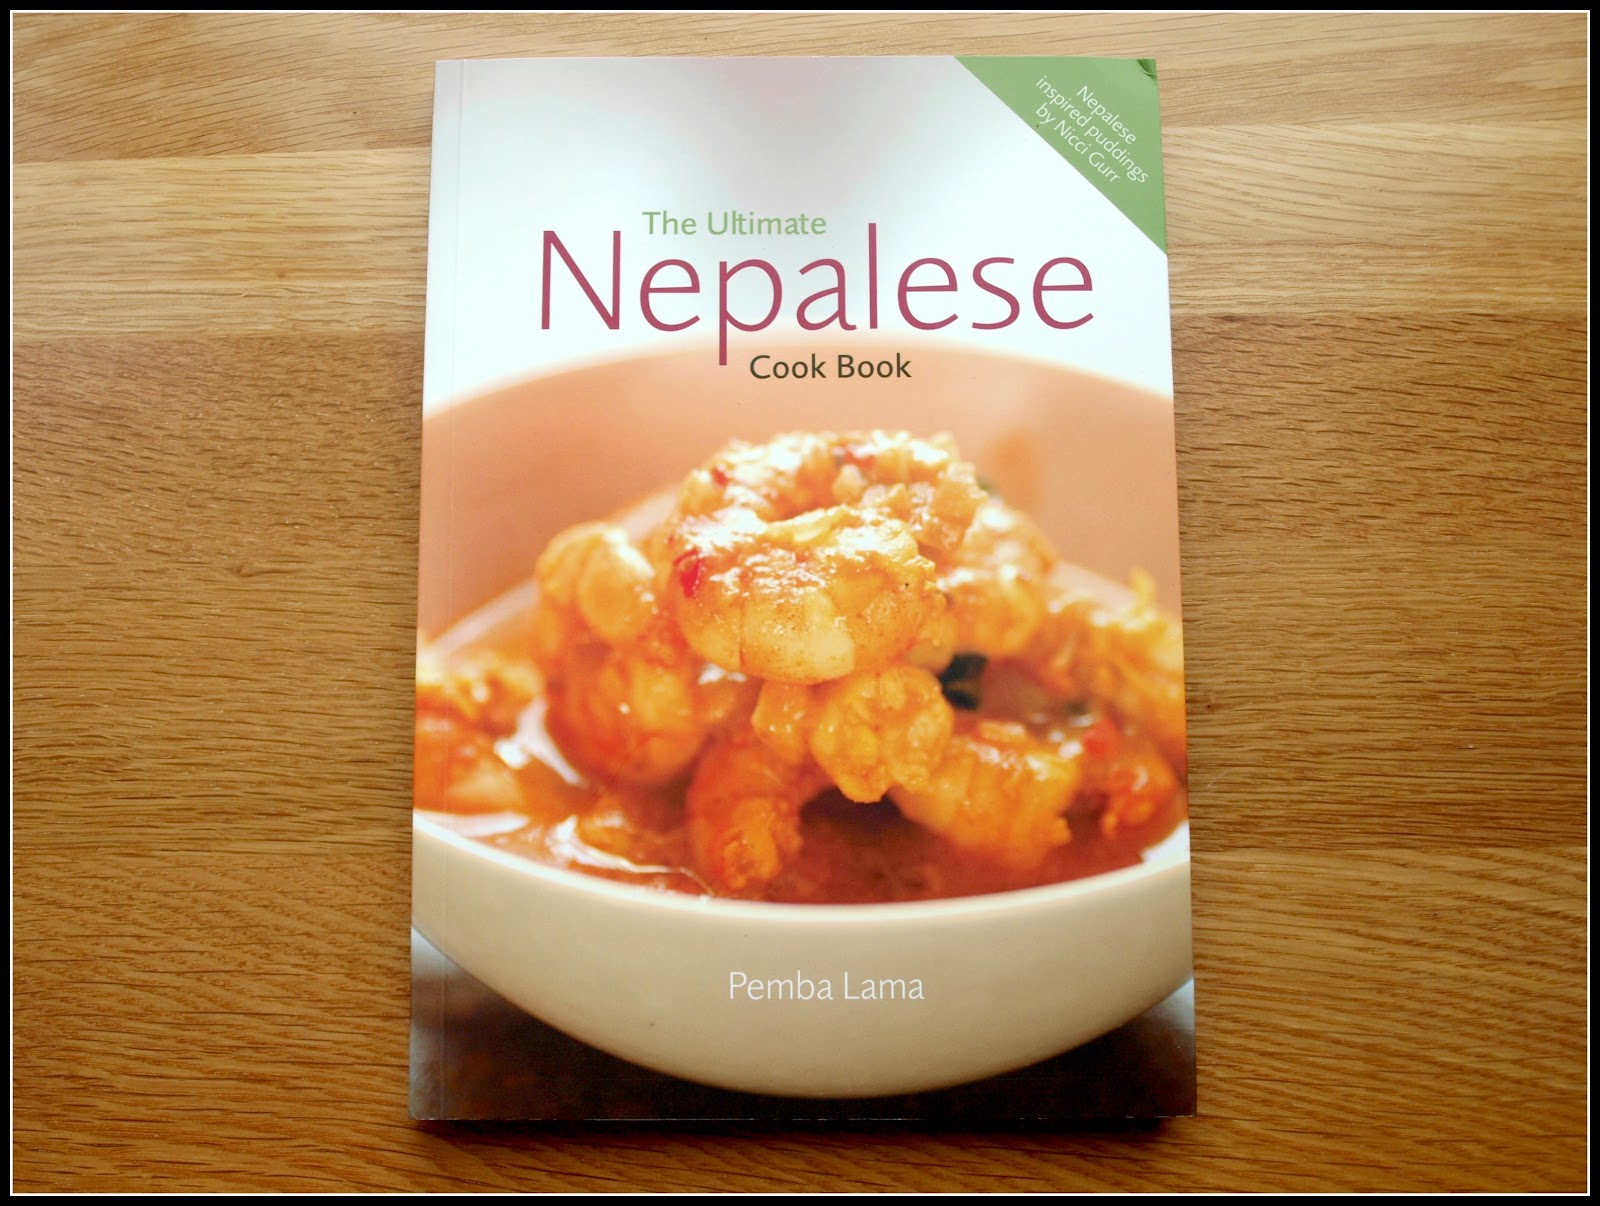 Marks veg plot the ultimate nepalese cook book it is a book about nepalese gurkha cookery written by a man called pemba lama who served in the british army as a gurkha chef and who has subsequently forumfinder Image collections